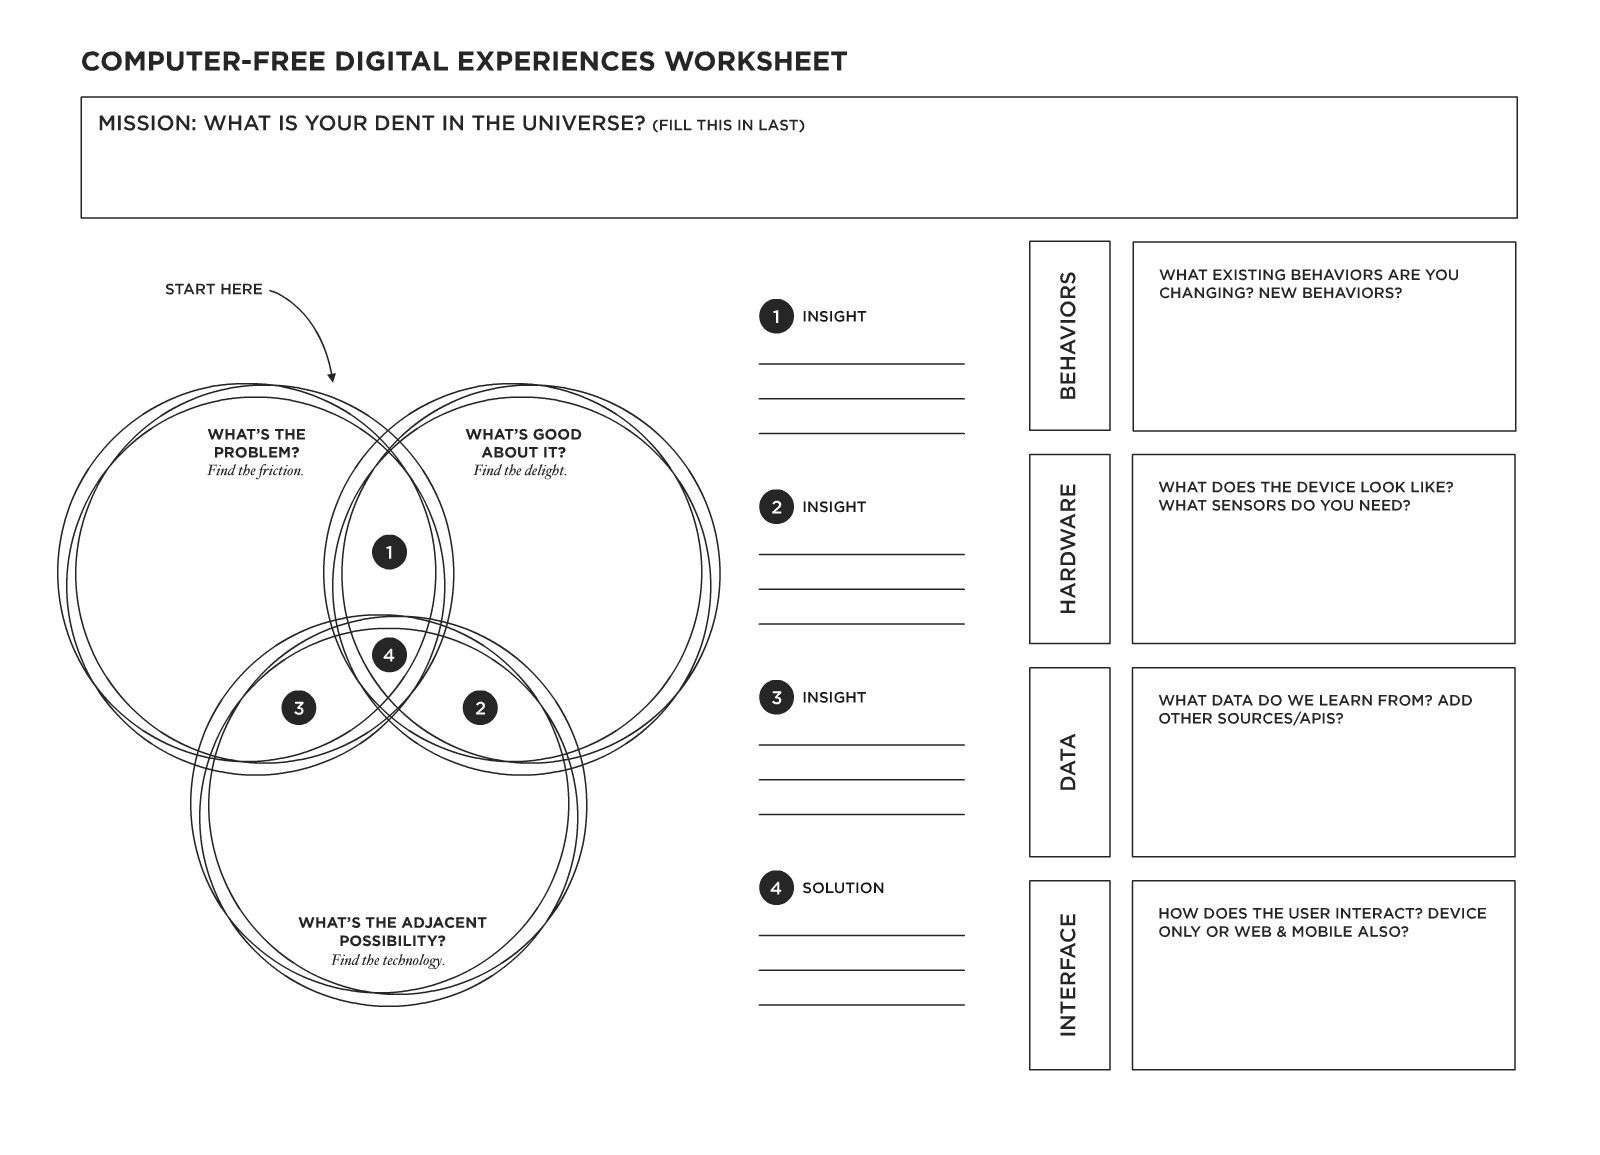 A Worksheet To Create Computer Free Digital Experiences